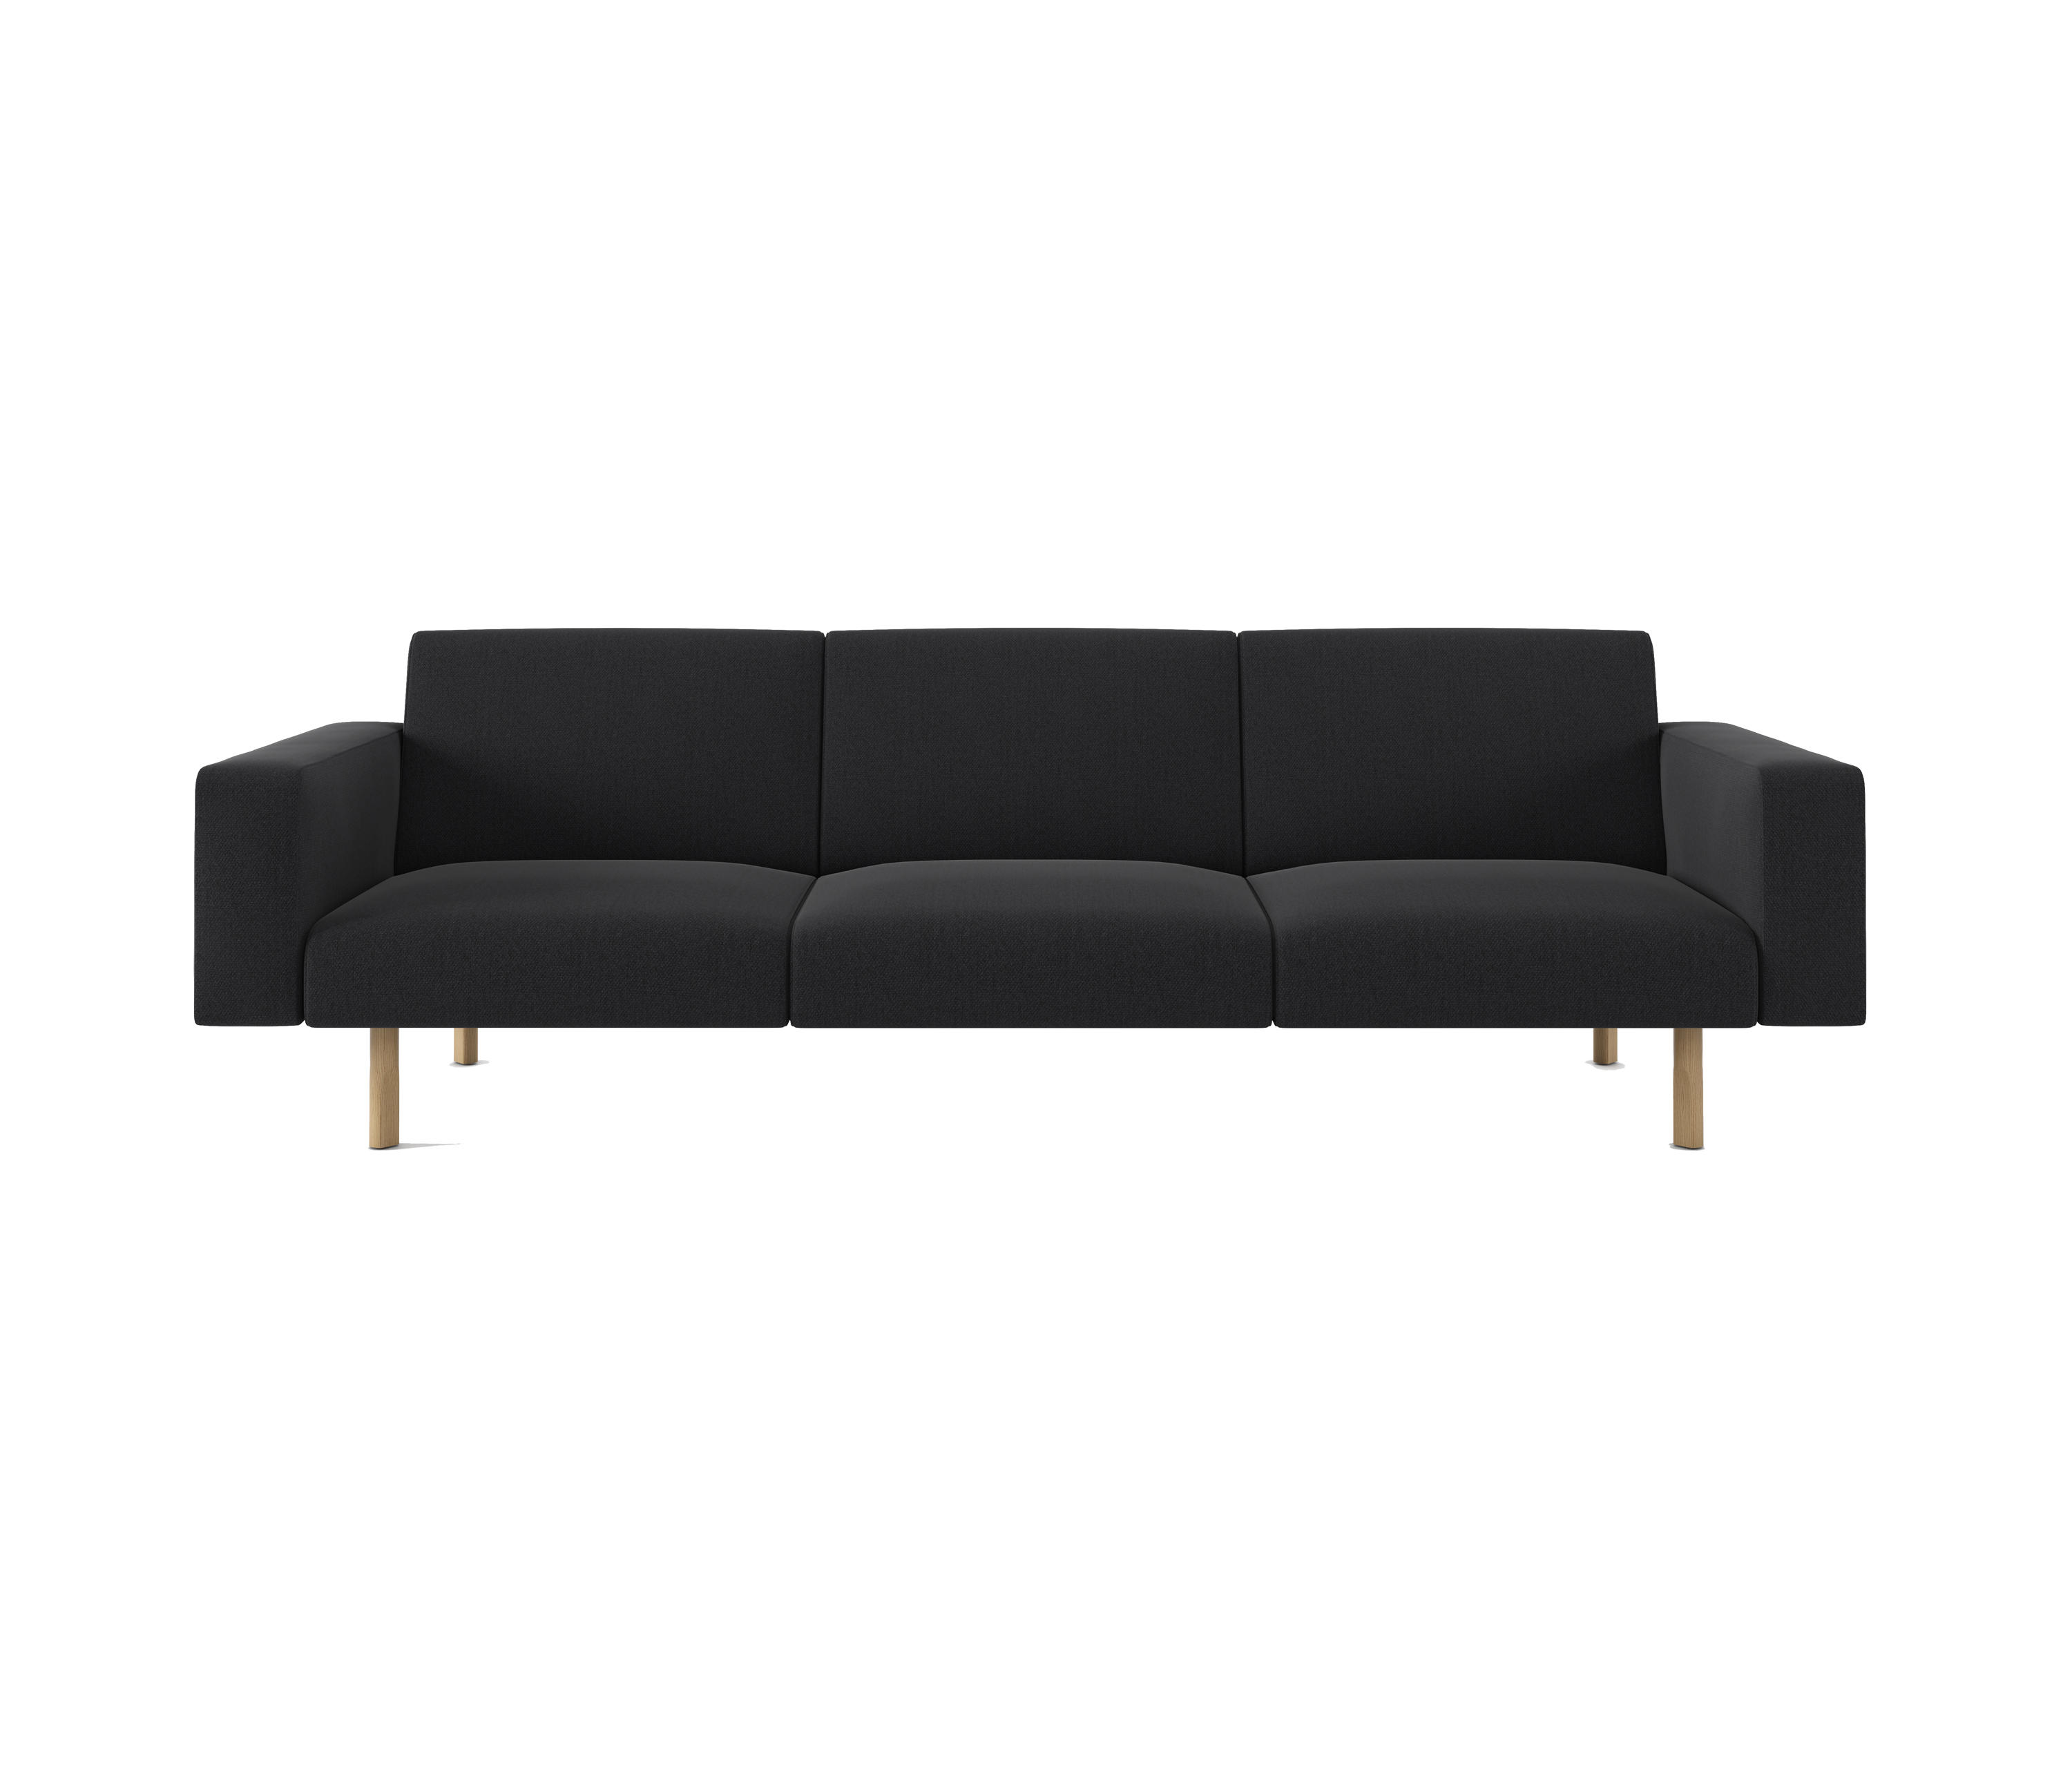 Altea 120 Sofa Sistema Sofas From Viccarbe Architonic